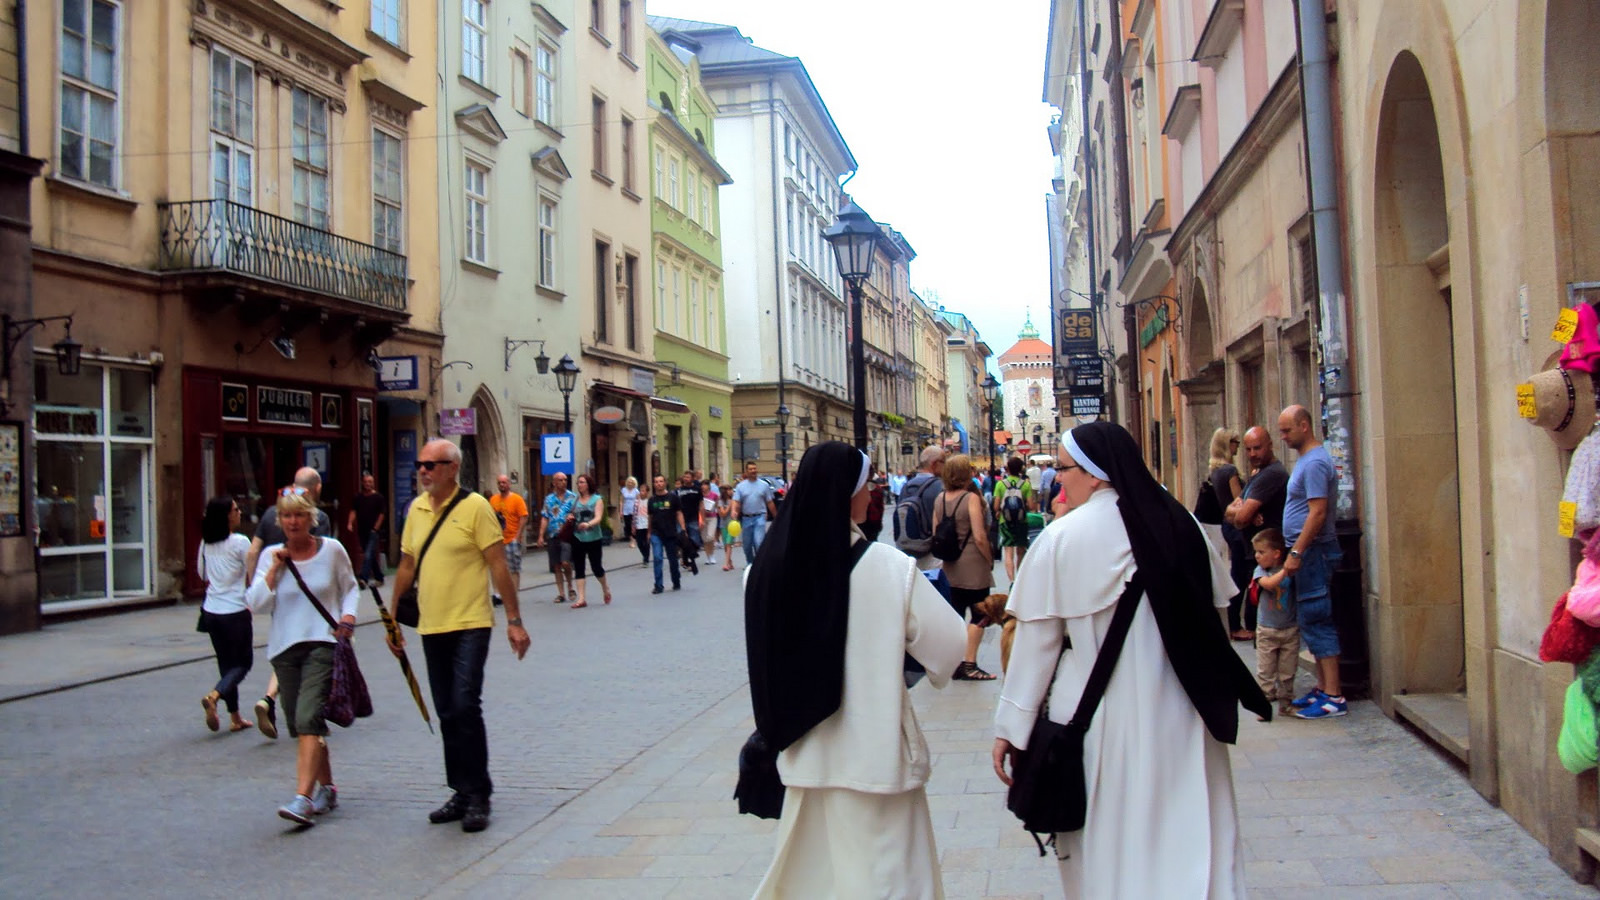 Nuns Walking on City Street in Poland